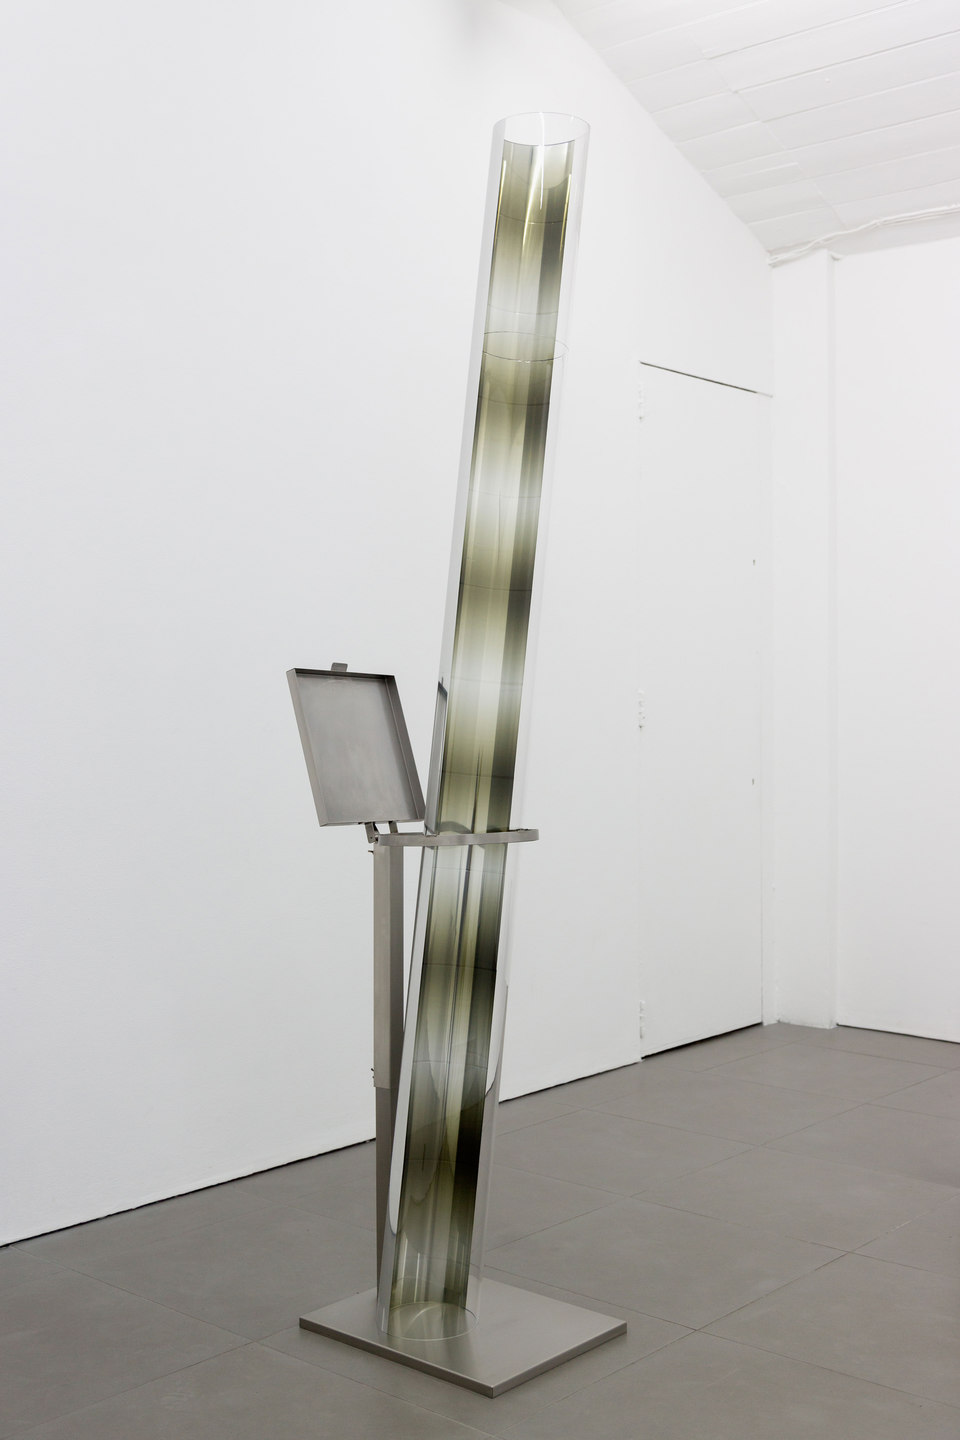 Marte Eknæs, Reboot Horizon, 'Verticalia V', 2014, steel trash bag stand, plexiglas tube with metallic film, Cell Project Space